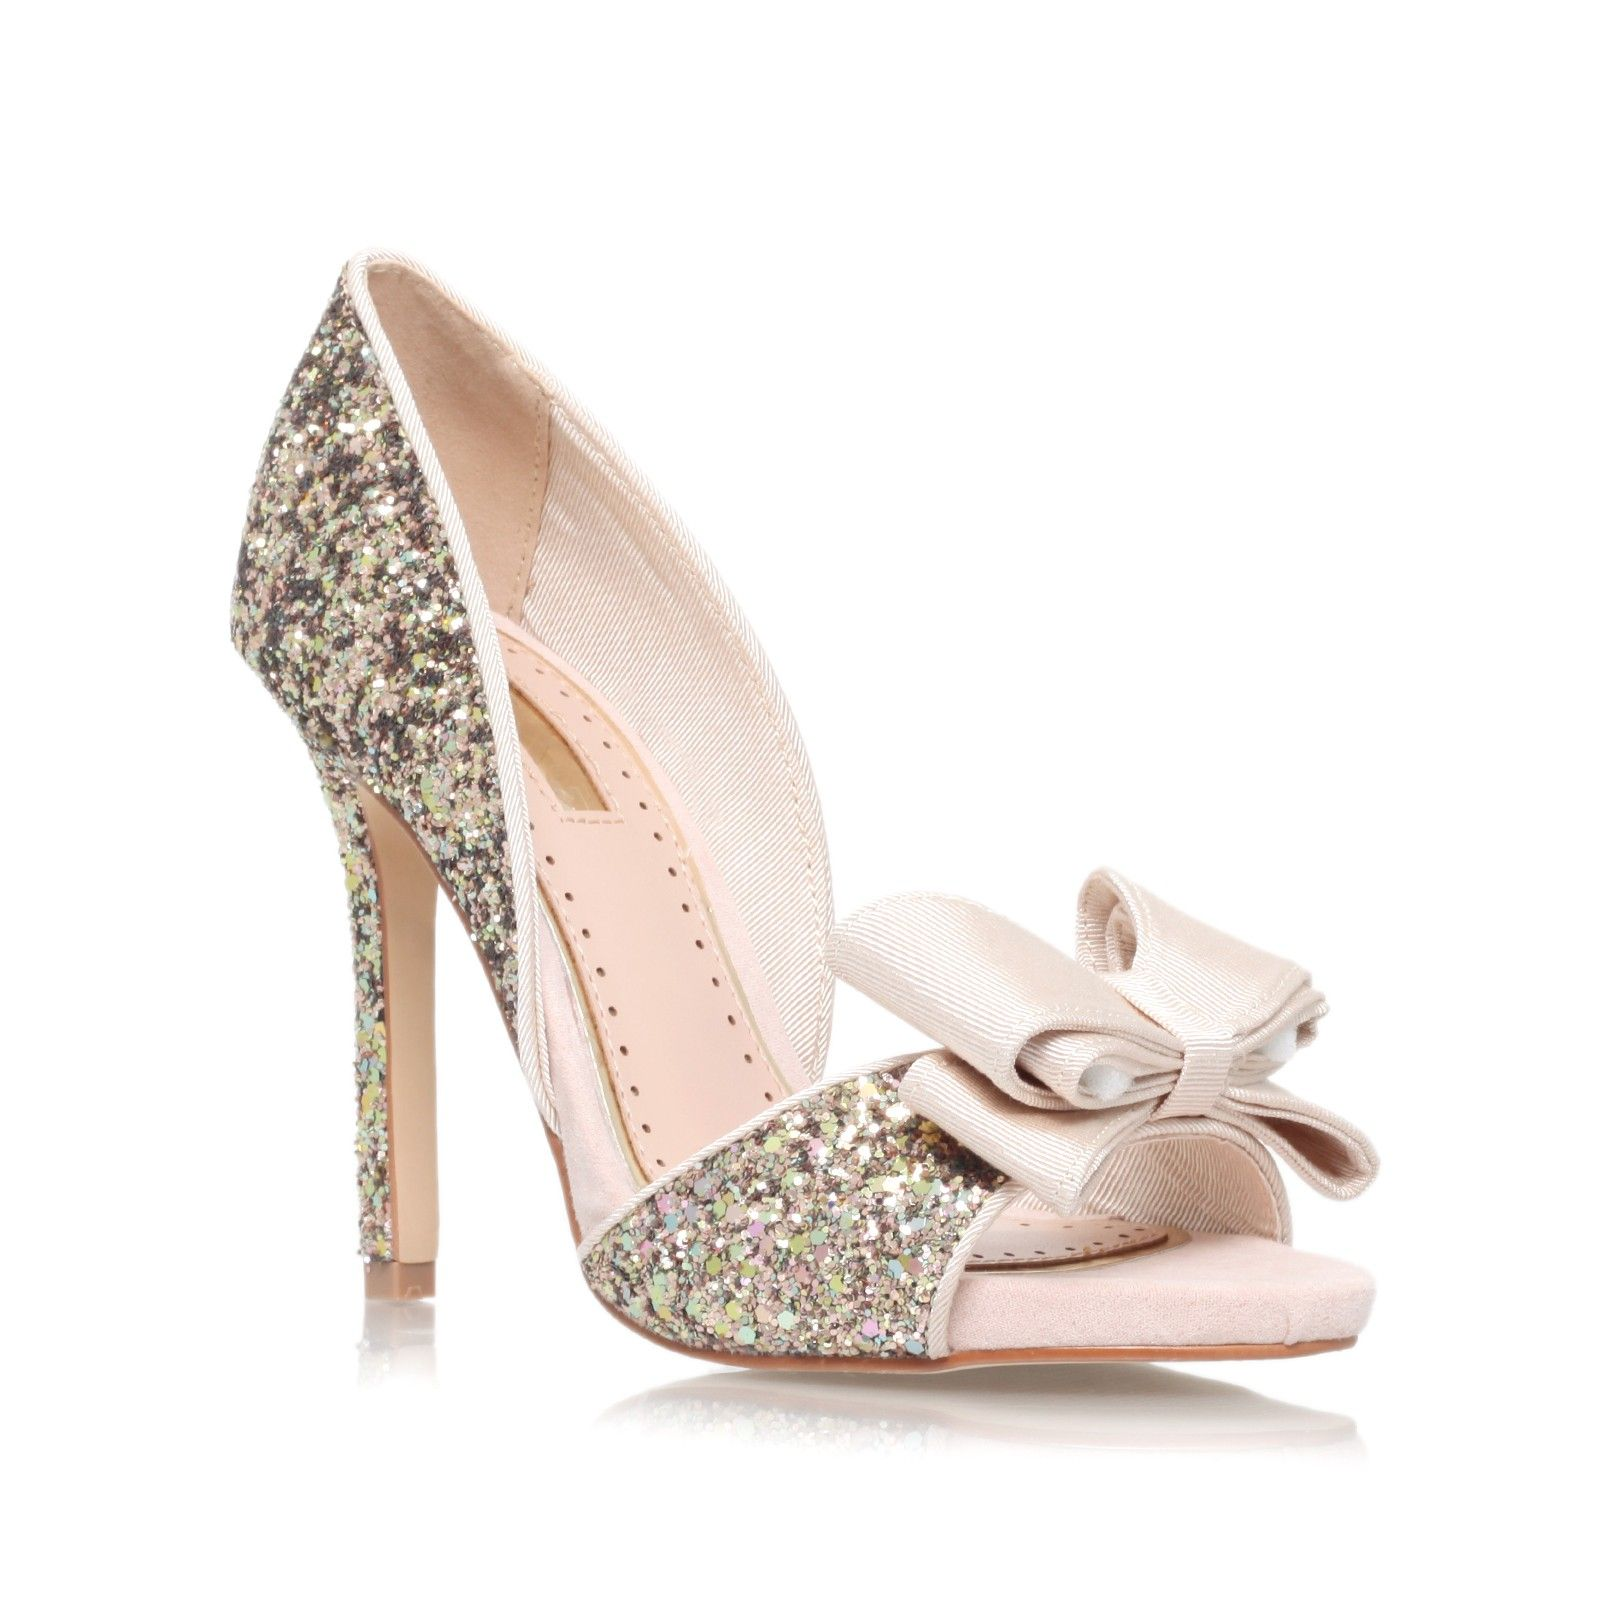 gabriella gold high heel occasion shoes from Miss KG